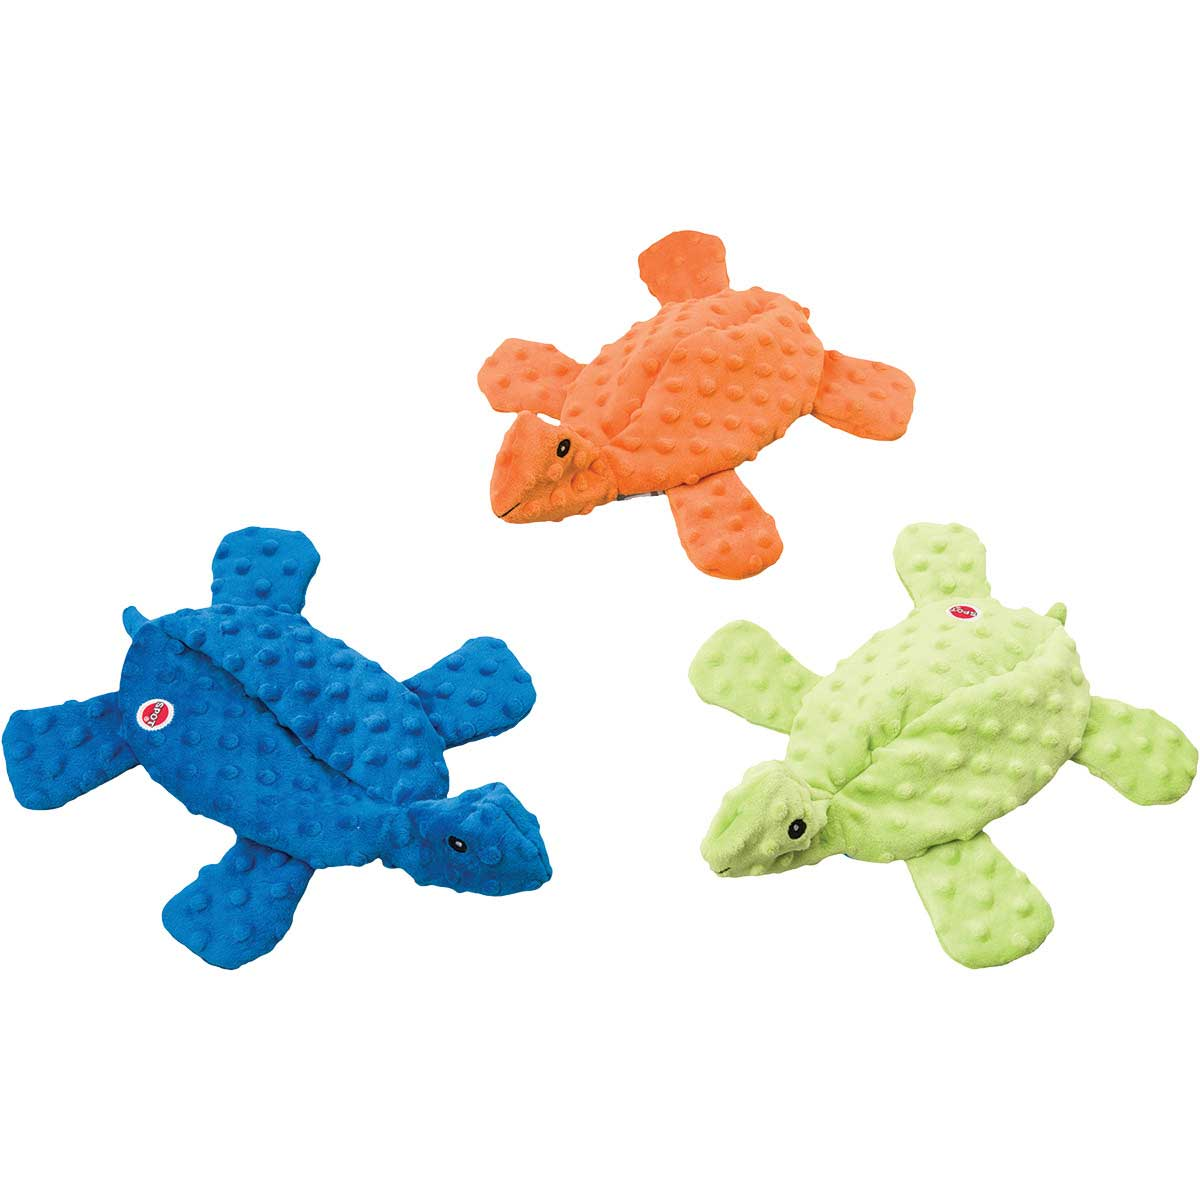 15 inch Skinneeez Extreme Turtle Dog Toy - Blue and Orange and Green